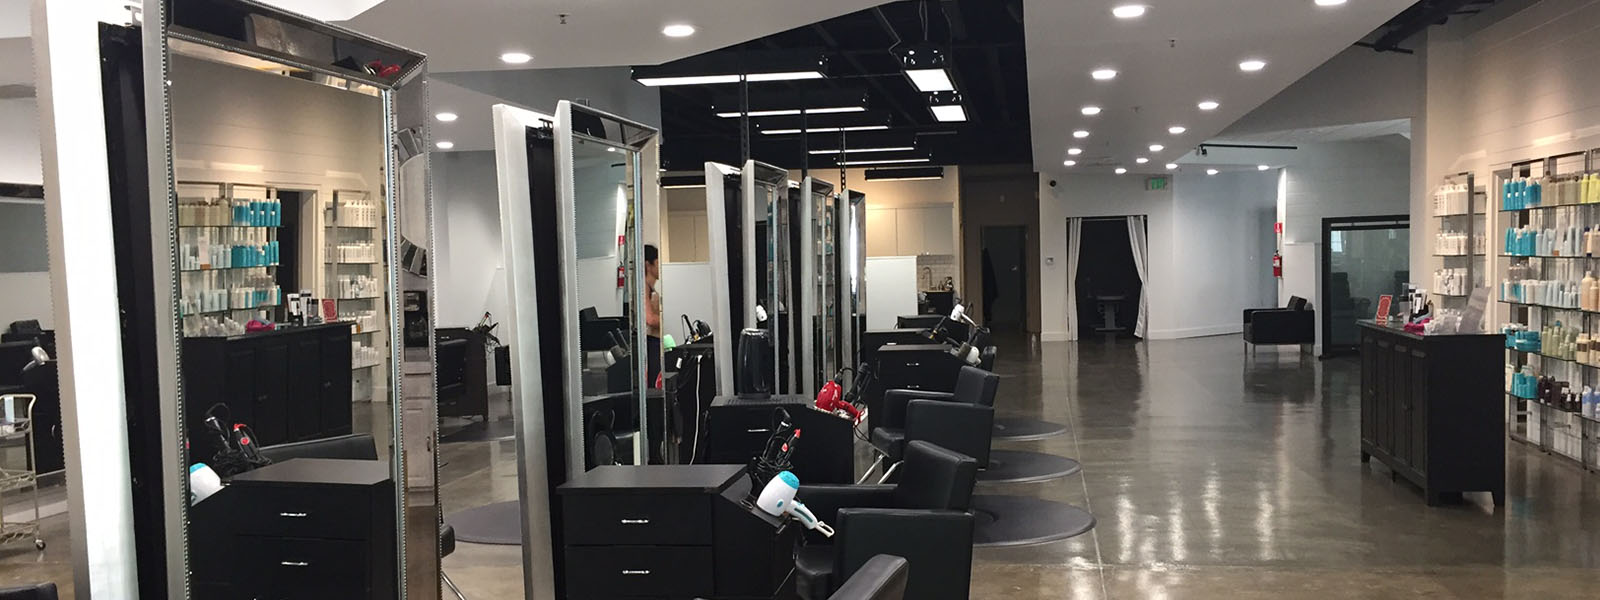 Salon Inspiration Inspirations Salon Turlock Ca